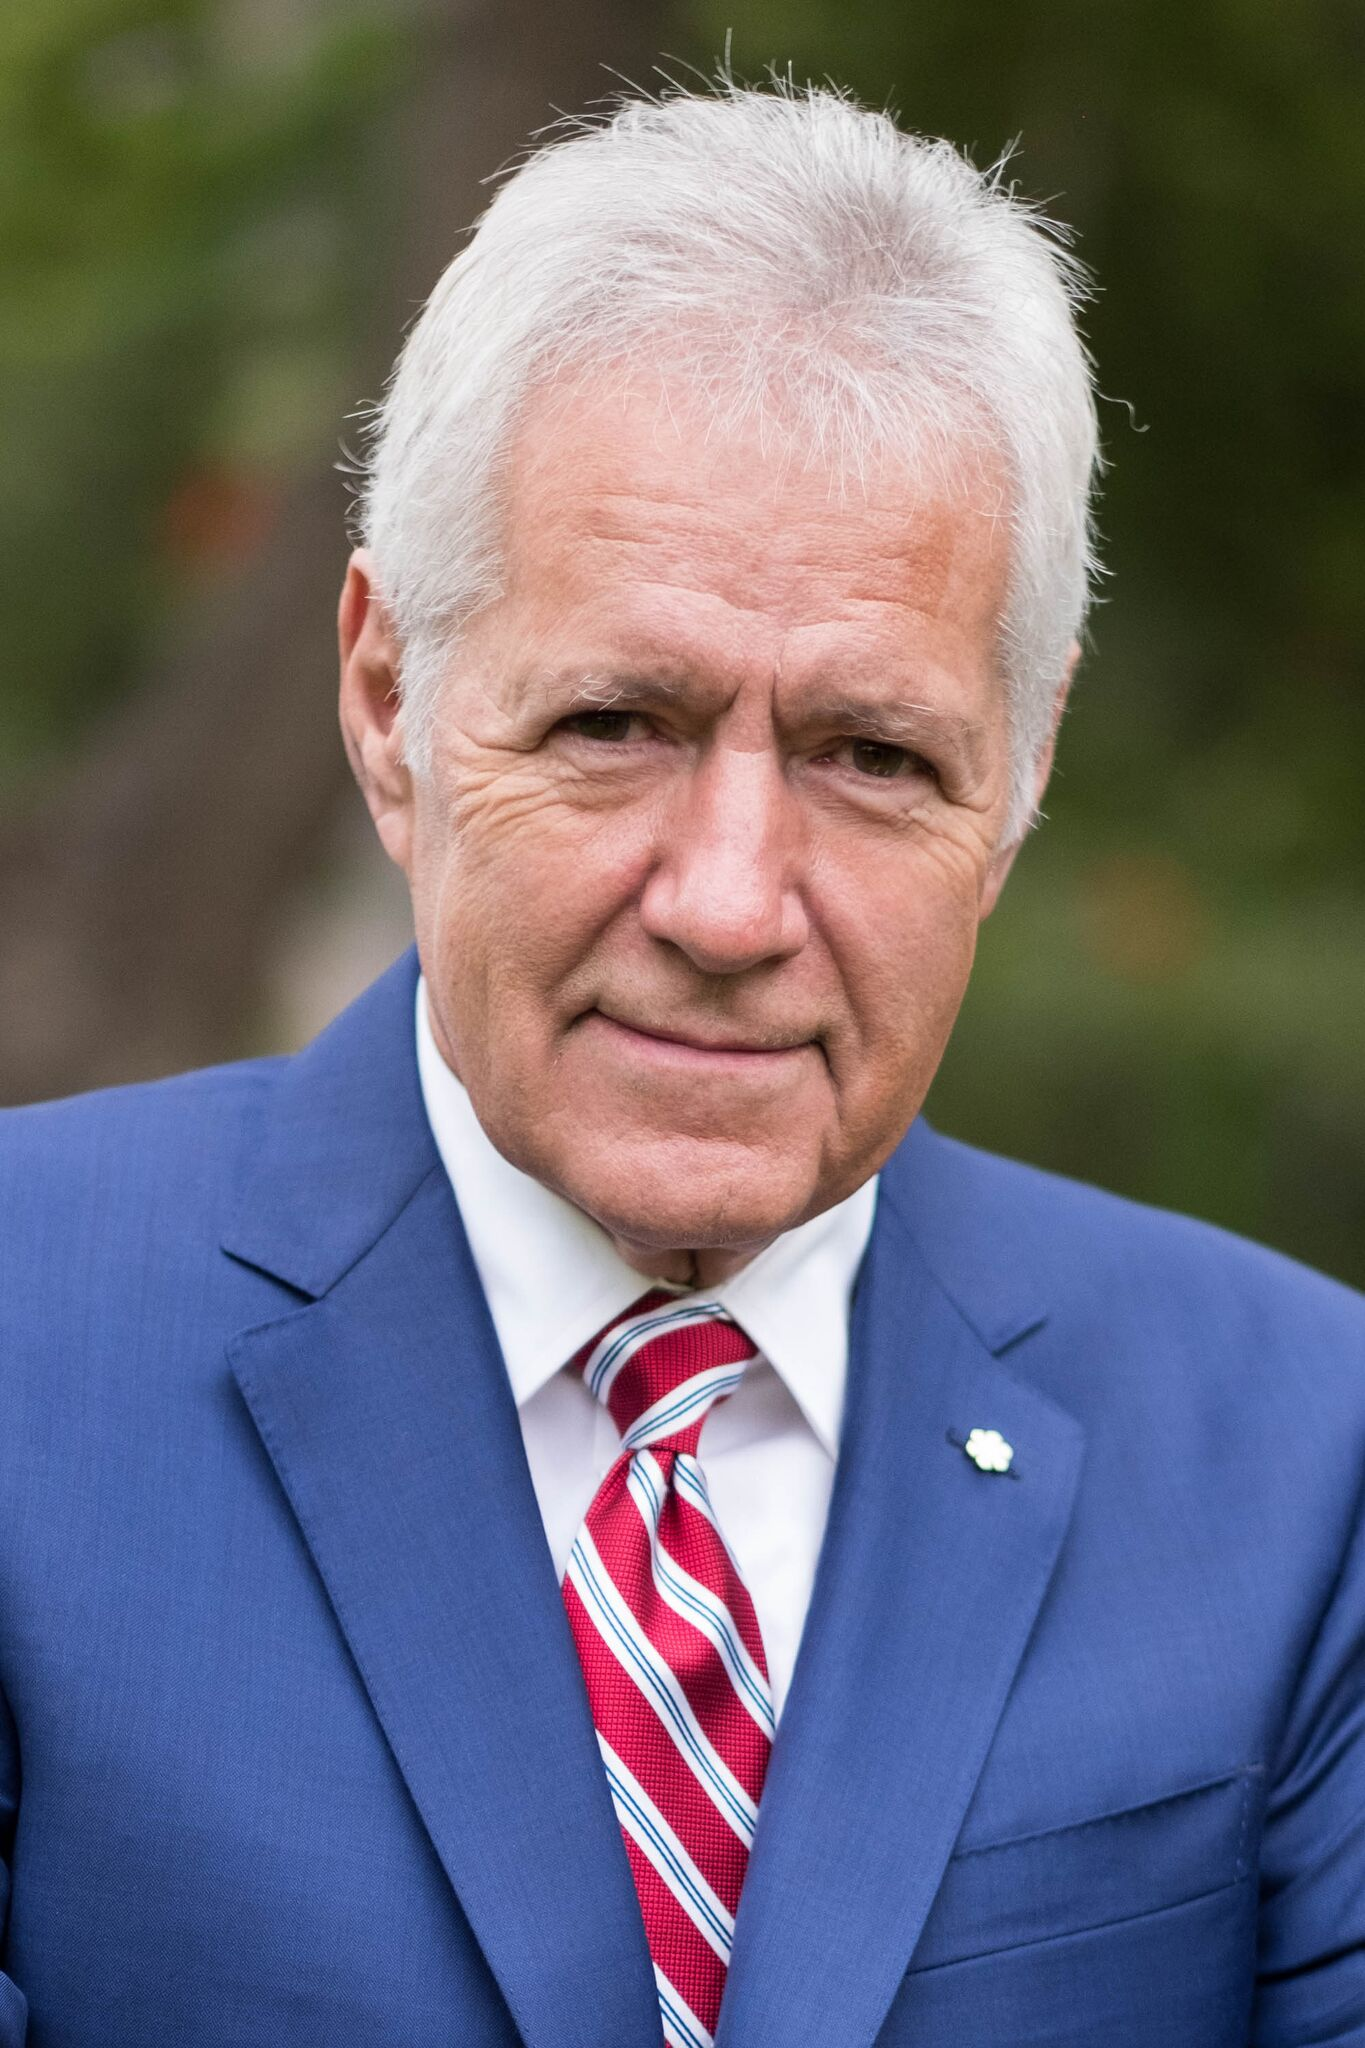 TV personality Alex Trebek attends the 150th anniversary of Canada's Confederation at the Official Residence of Canada | Photo: Getty Images